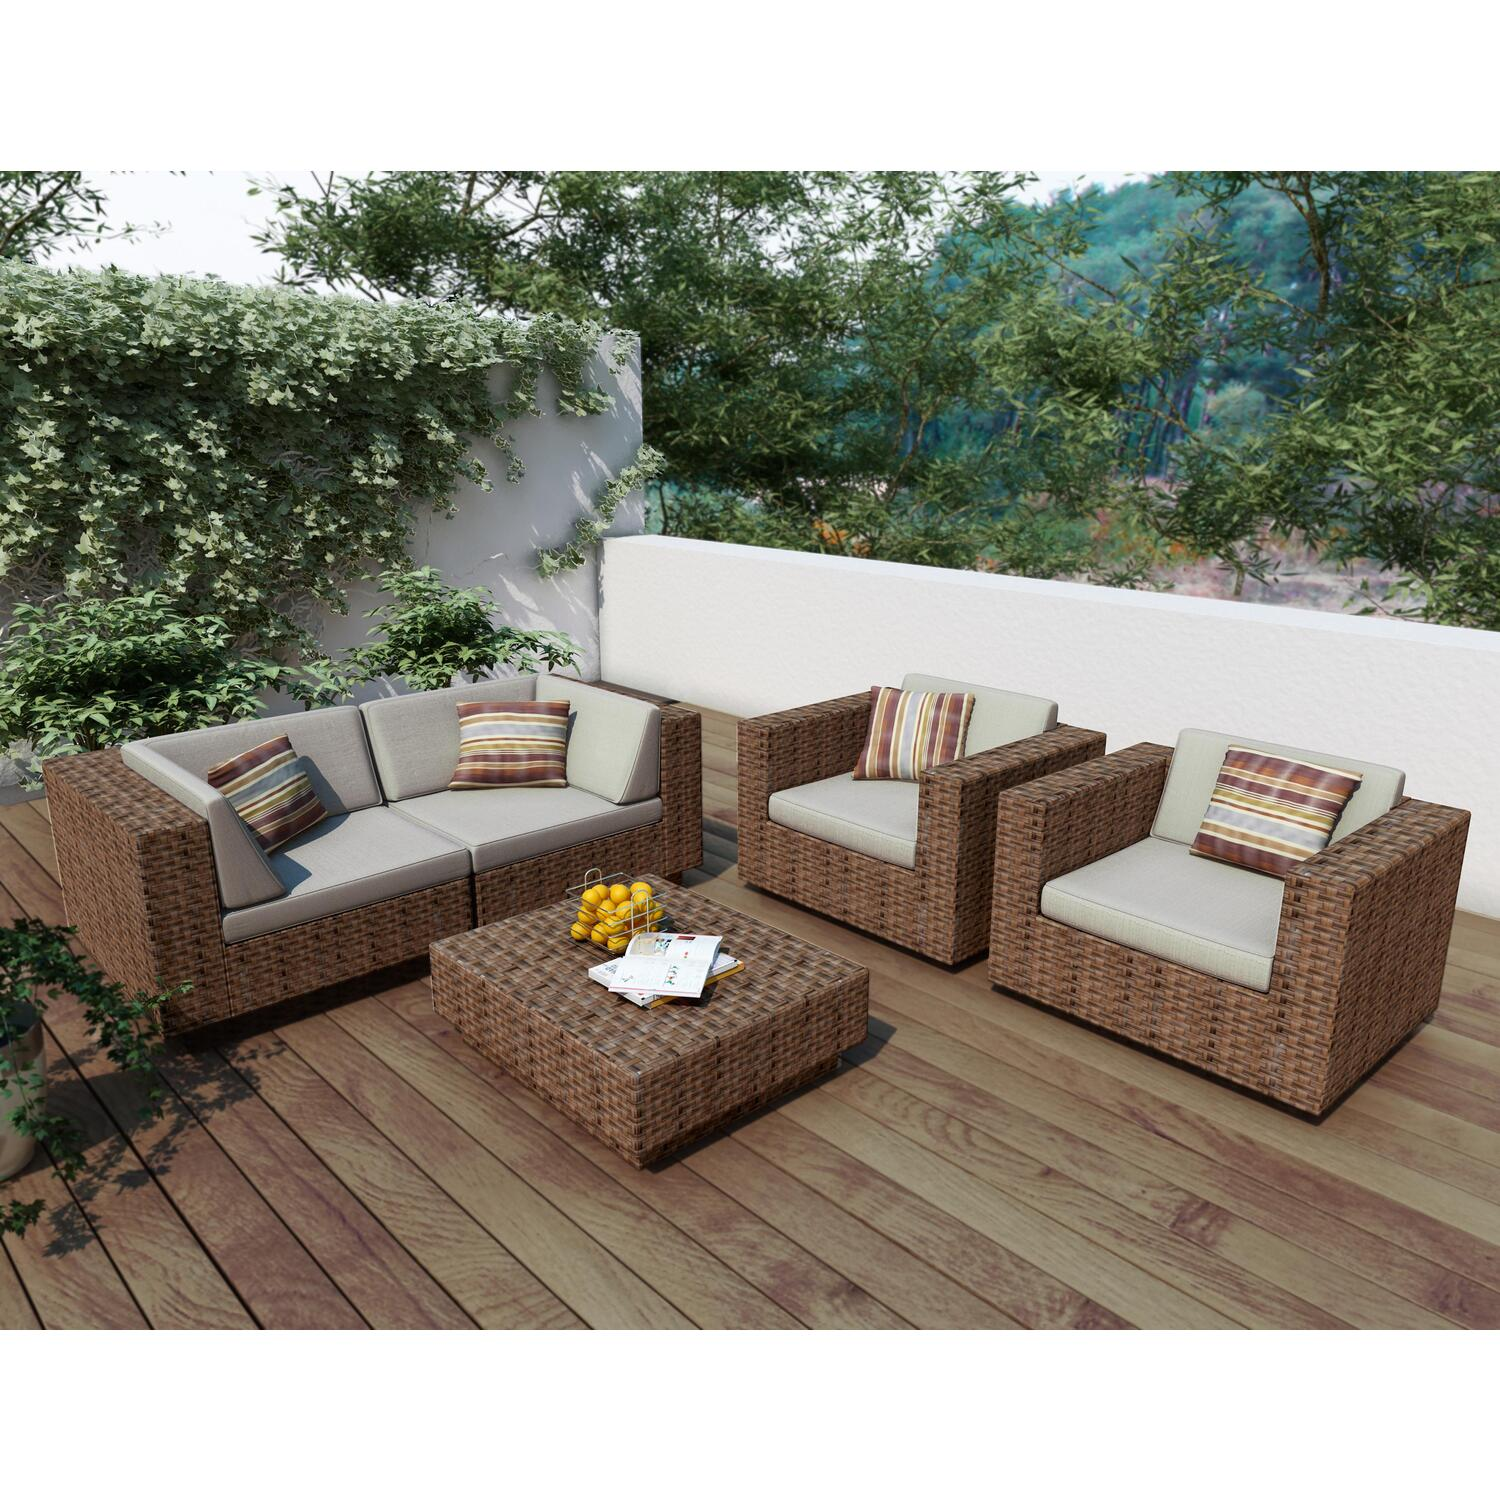 Park terrace 5 piece sofa patio set ojcommerce for Terrace chairs